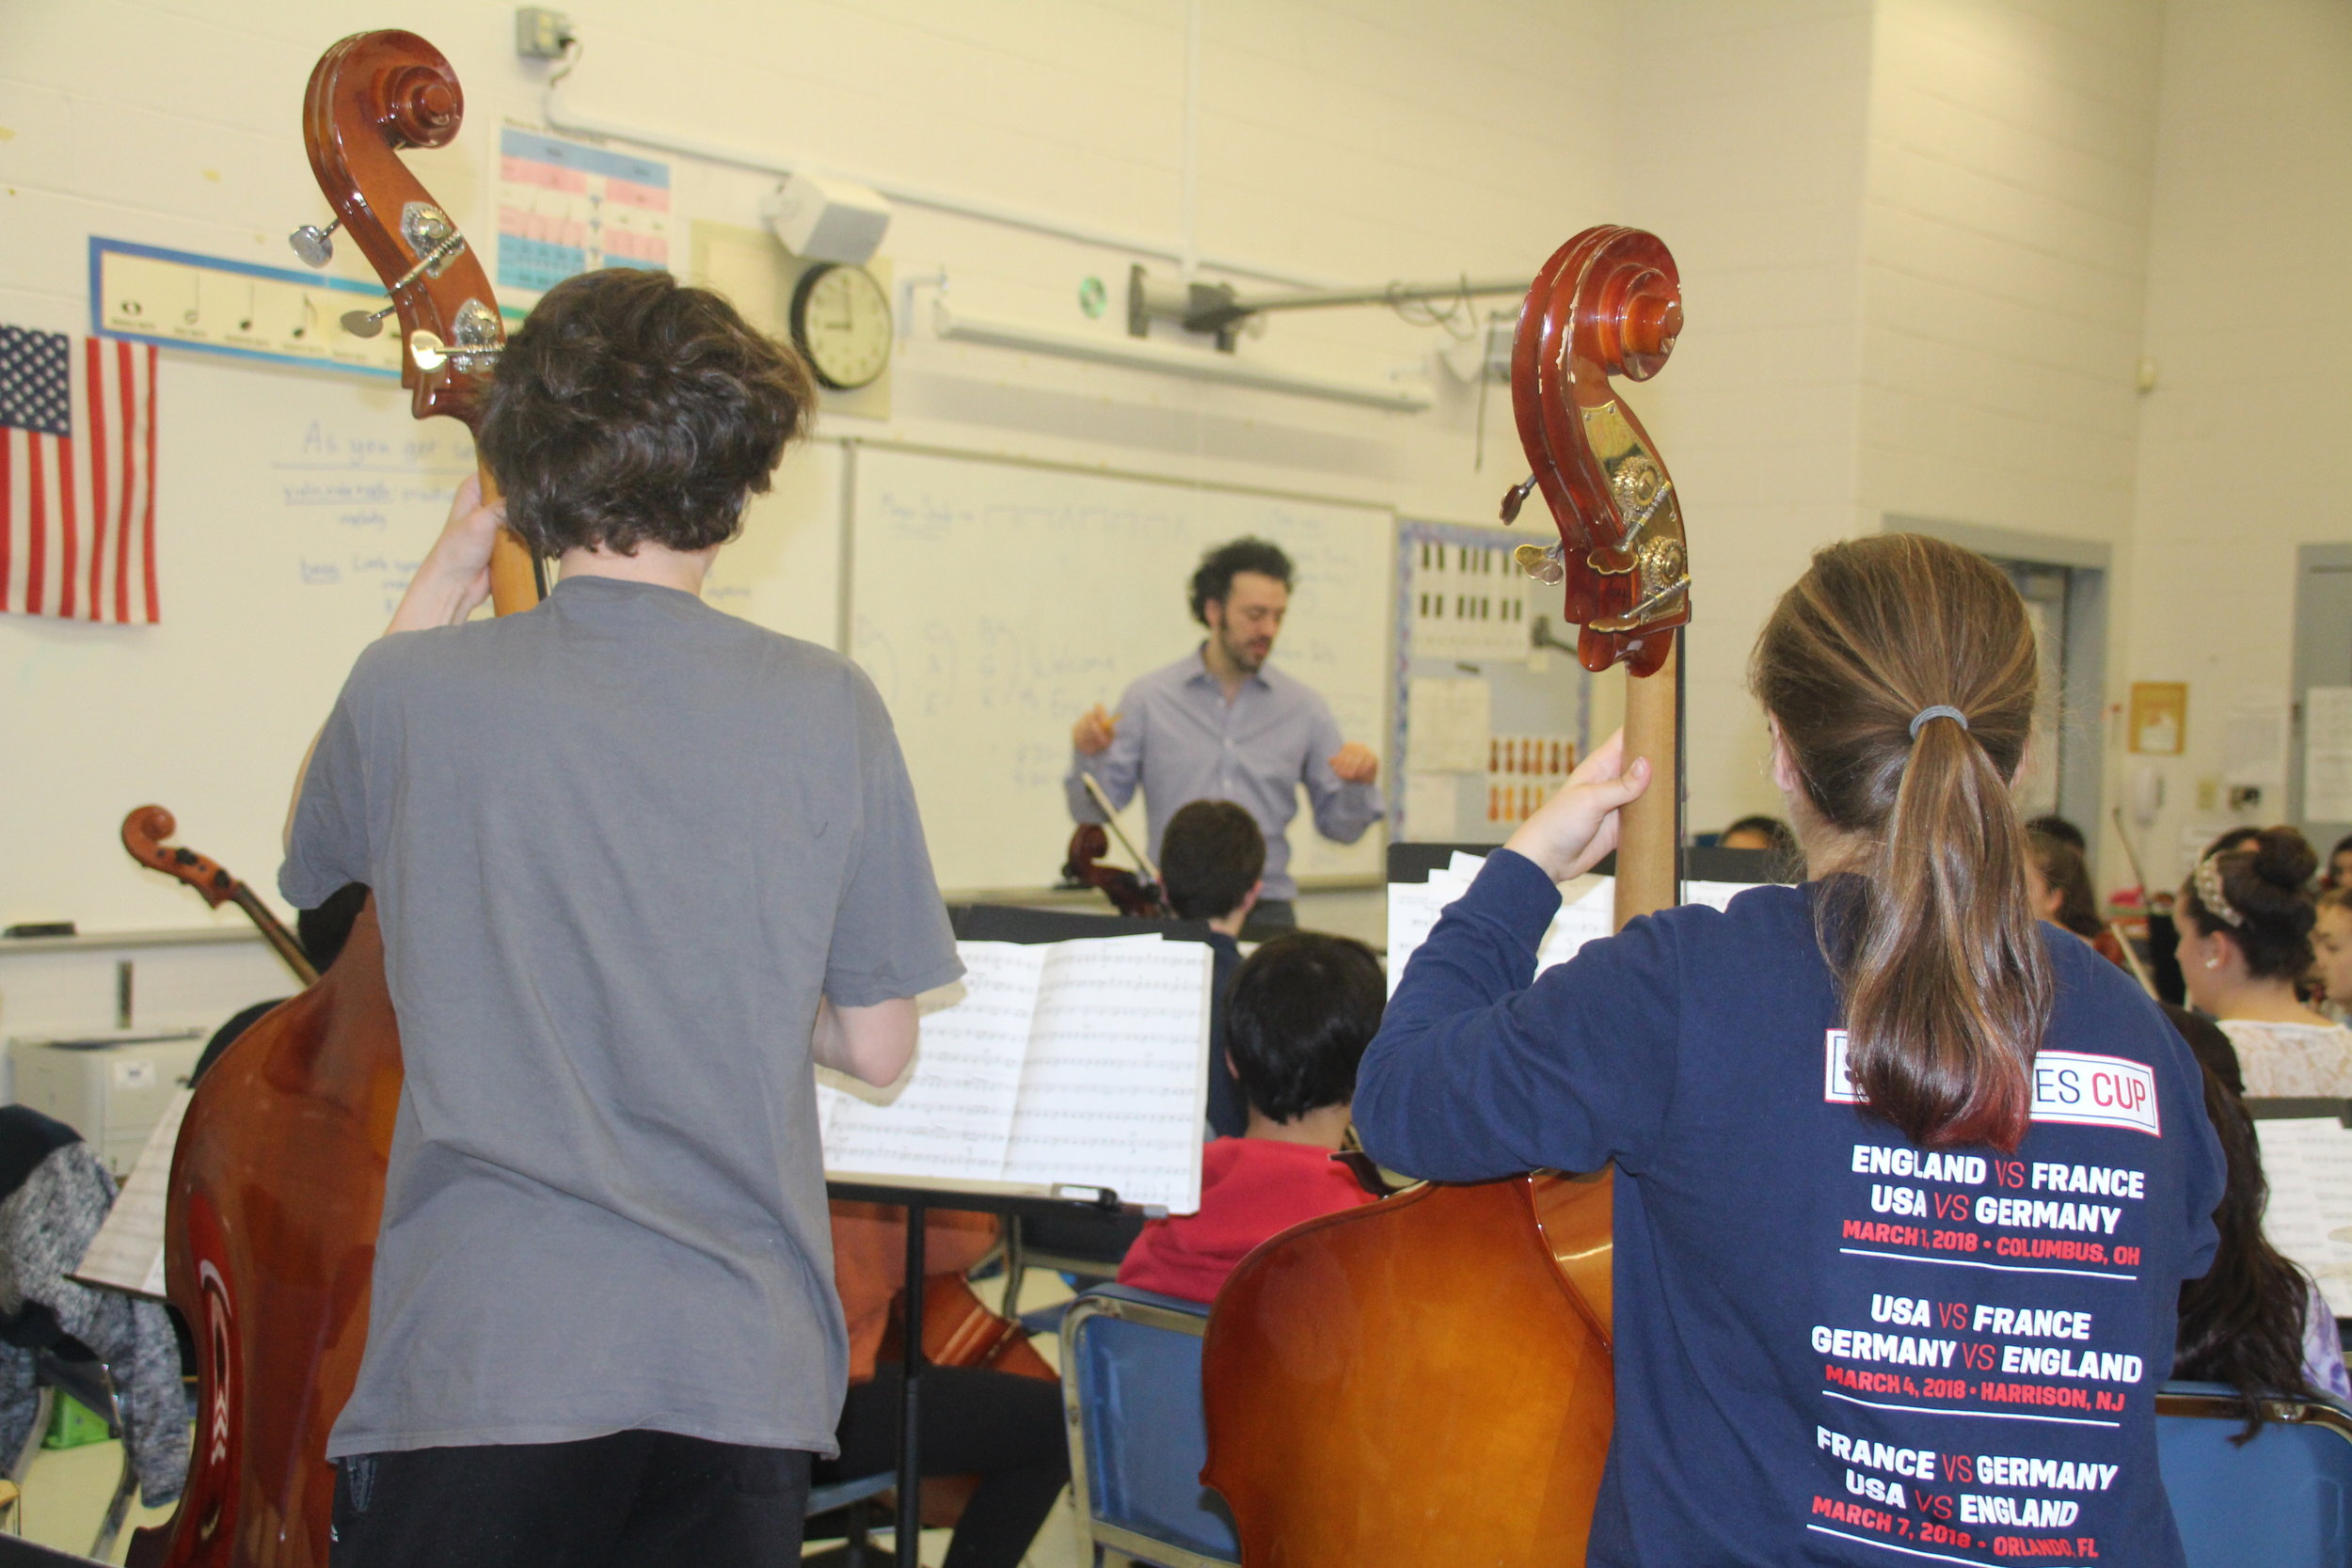 Eric conducts a Chamber Music class at Fairfield Woods Middle School.  Some 40 FWMS students attended the April 28 concert, and had a private Q and A with Eric afterward.